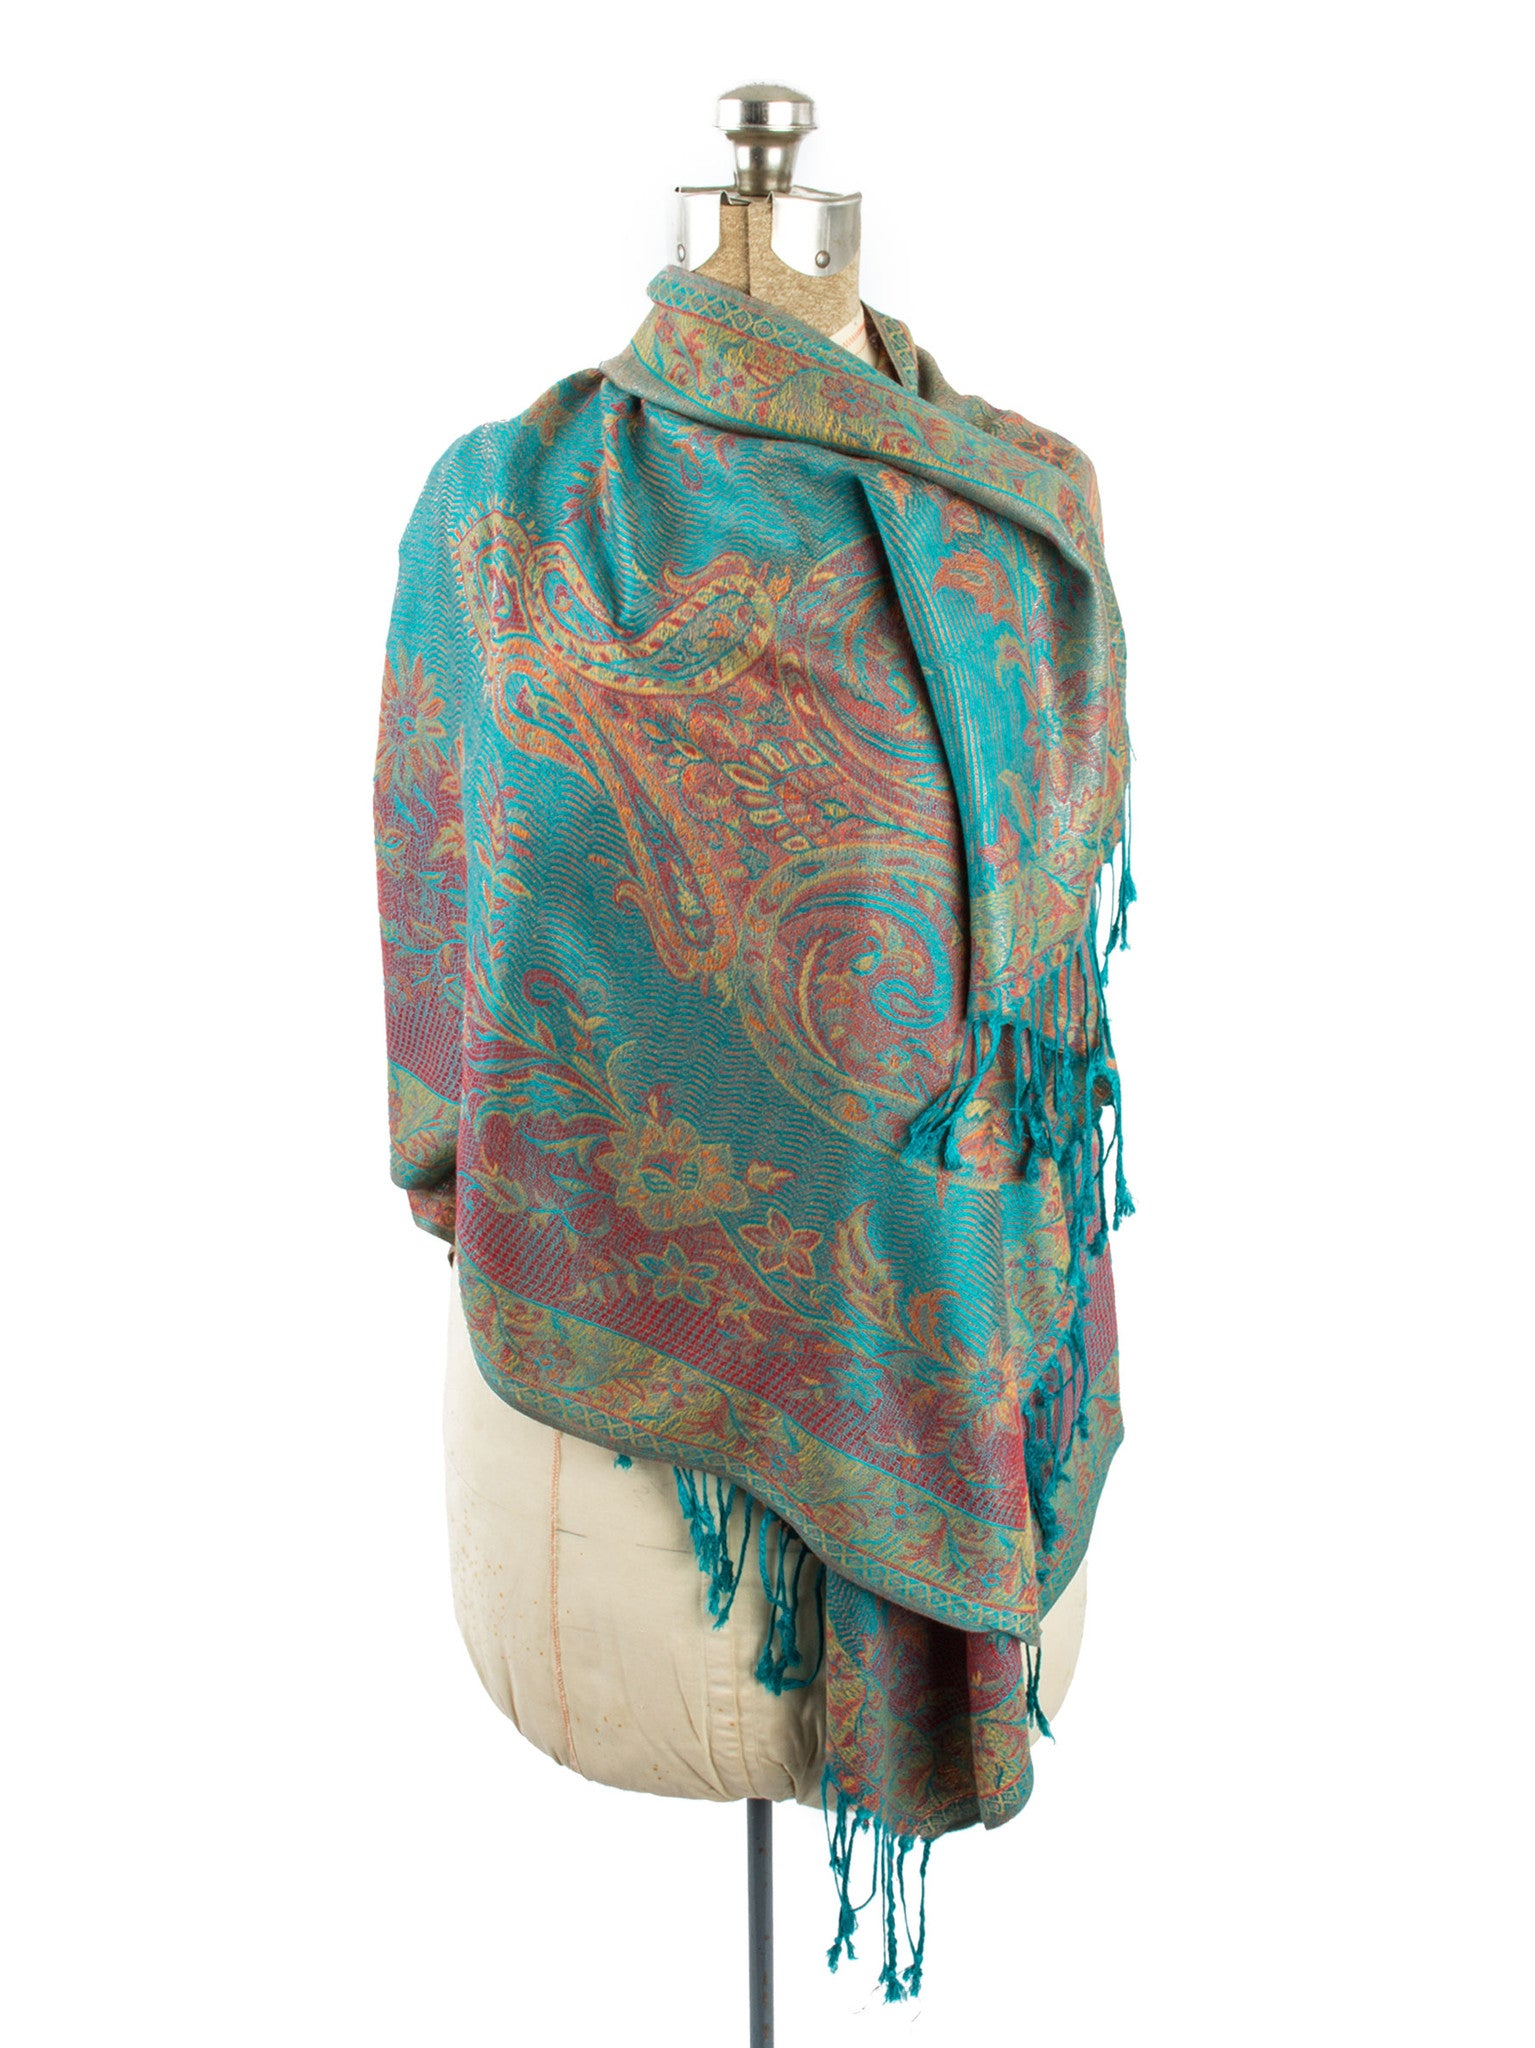 Scarves - Amrita Scarf, Pashmina Indian Paisley Traditional Jacquard Shawl -() Bohomonde  - 4